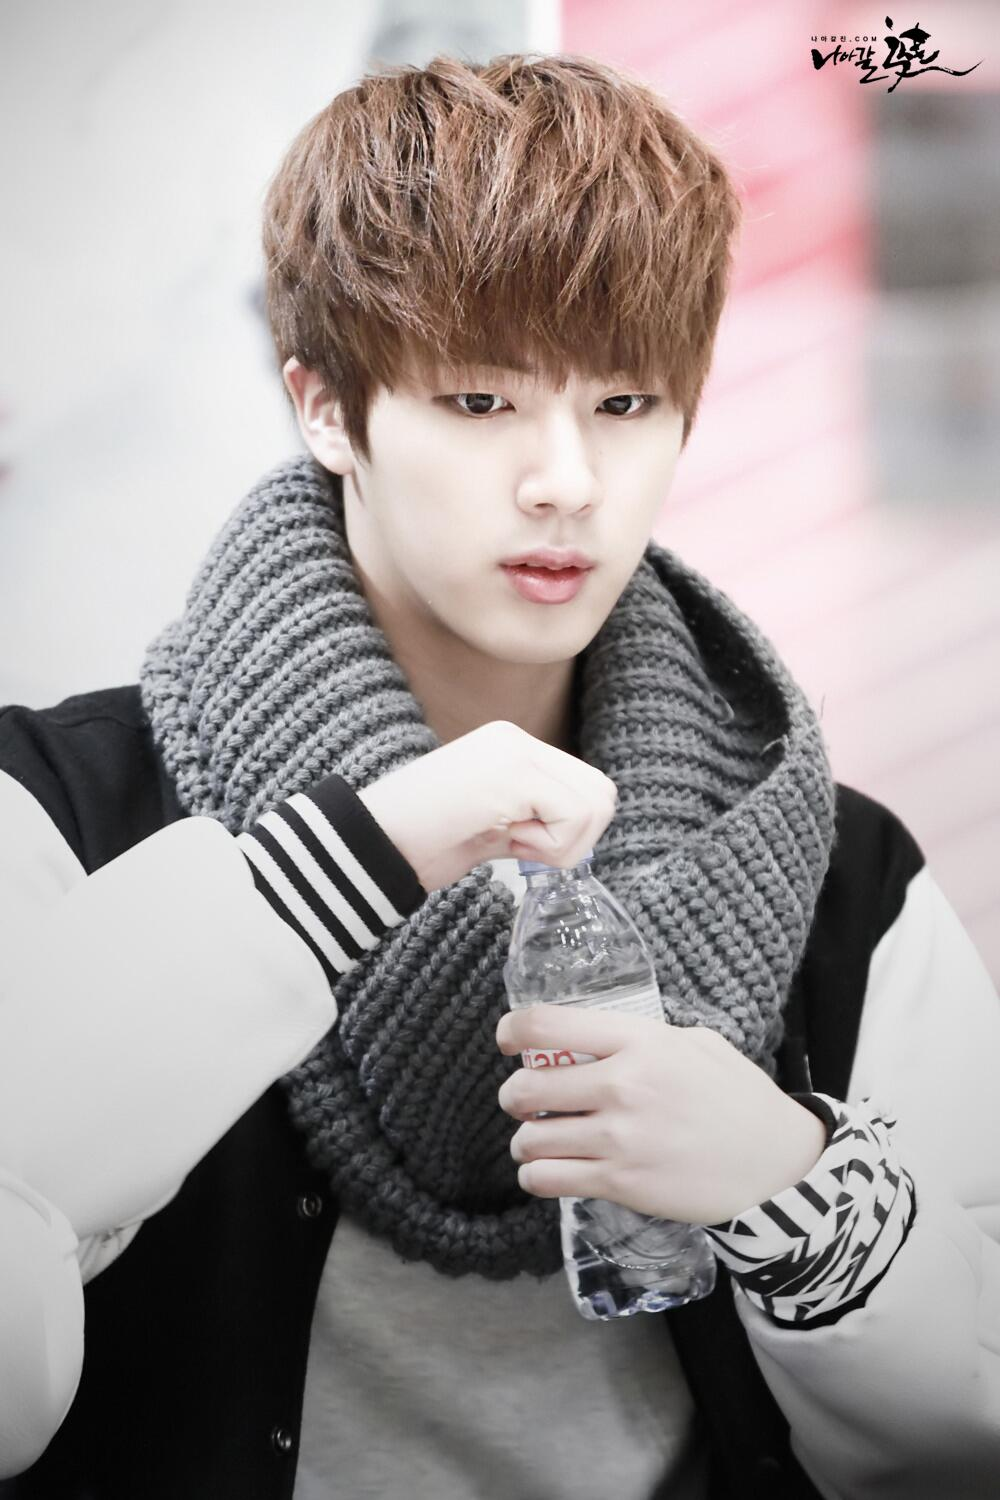 223 2238700 iphone bts jin